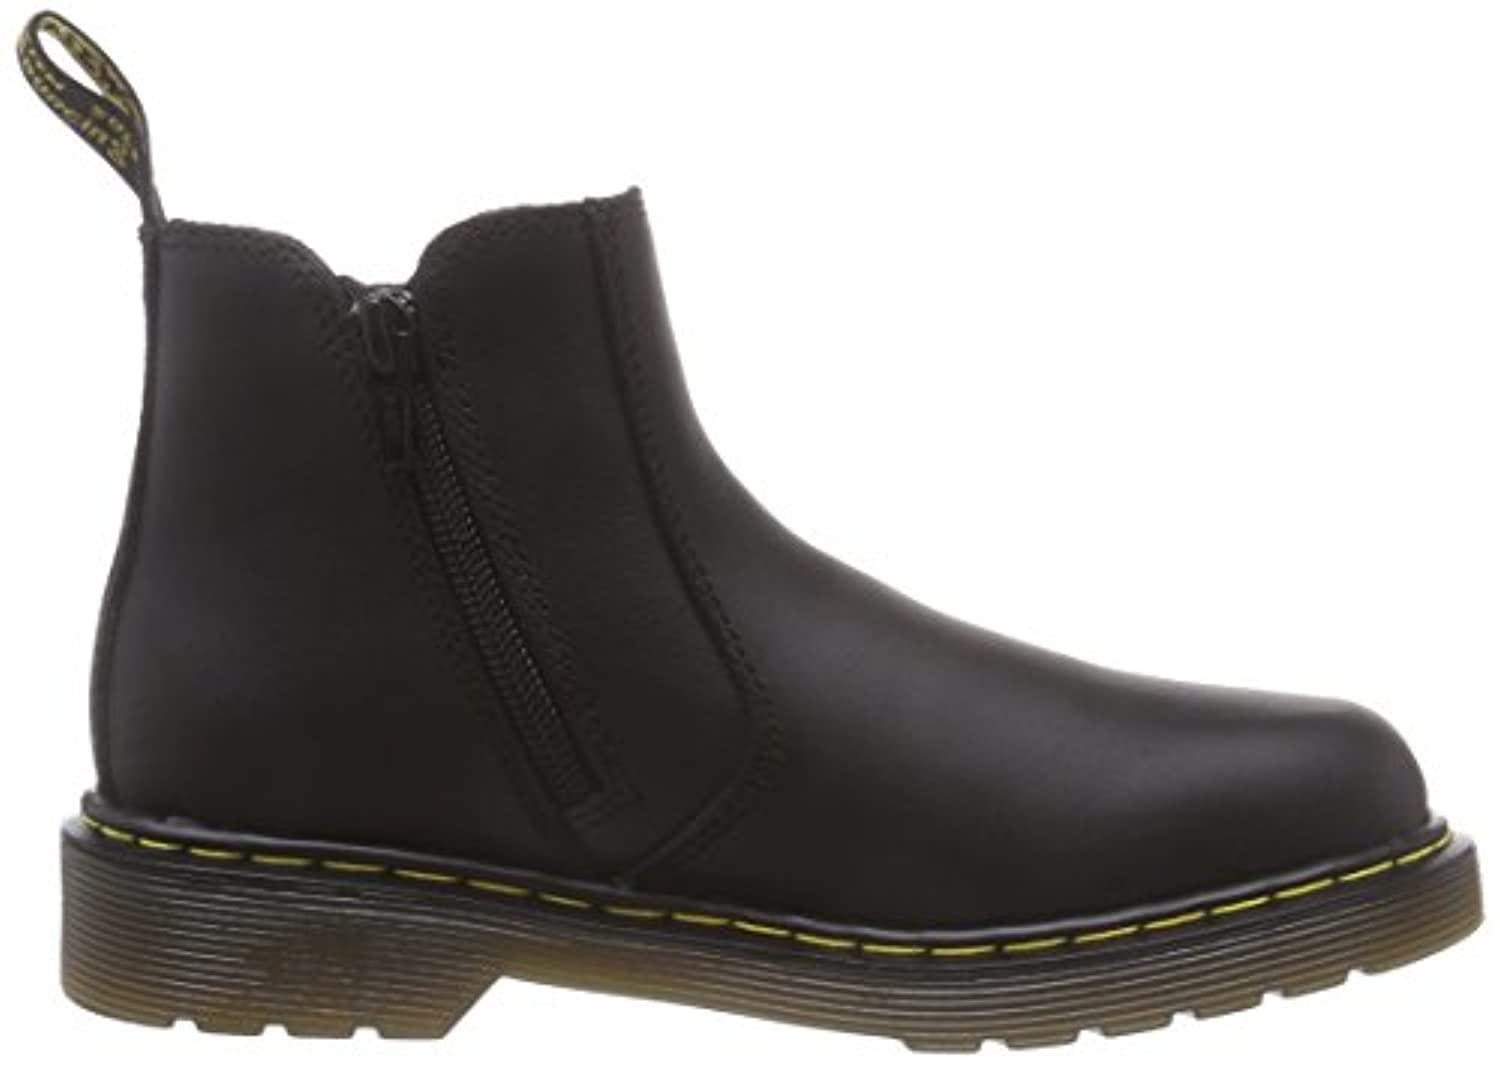 Dr. Martens Banzai Softy T Black, Unisex Kids' Boat Shoes, Black, 2 UK UK (34 EU)